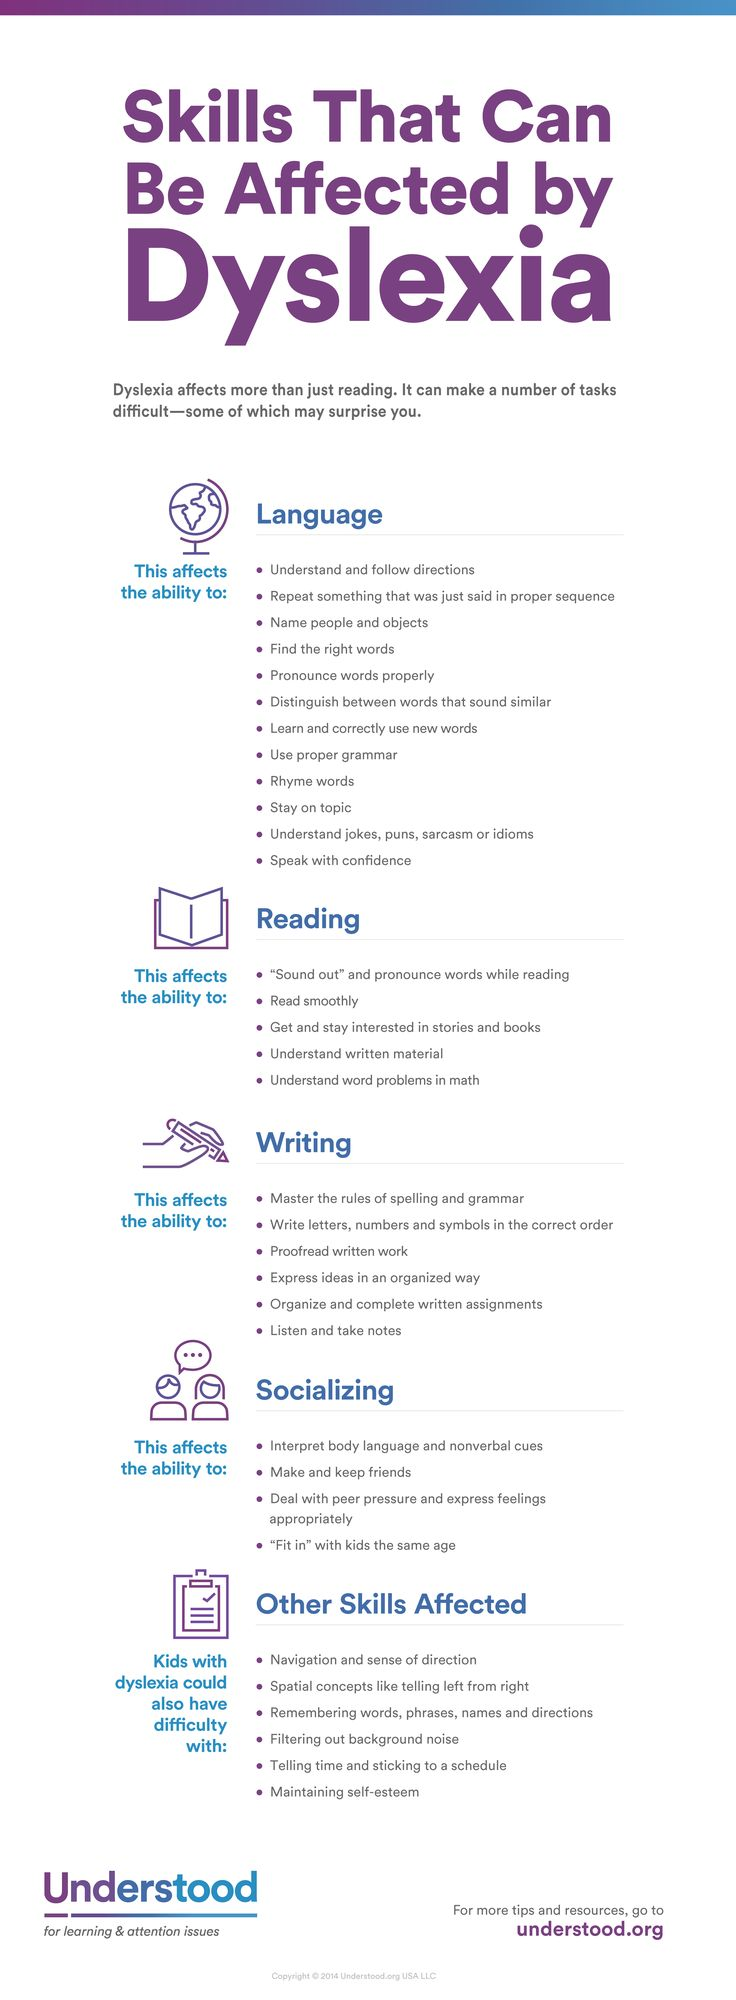 Dyslexia - If you have employees, or have candidates in the recruitment process, here's a quick guide to the variety of skills that can be affected by dyslexia. Some you may not have considered in workplace situations.